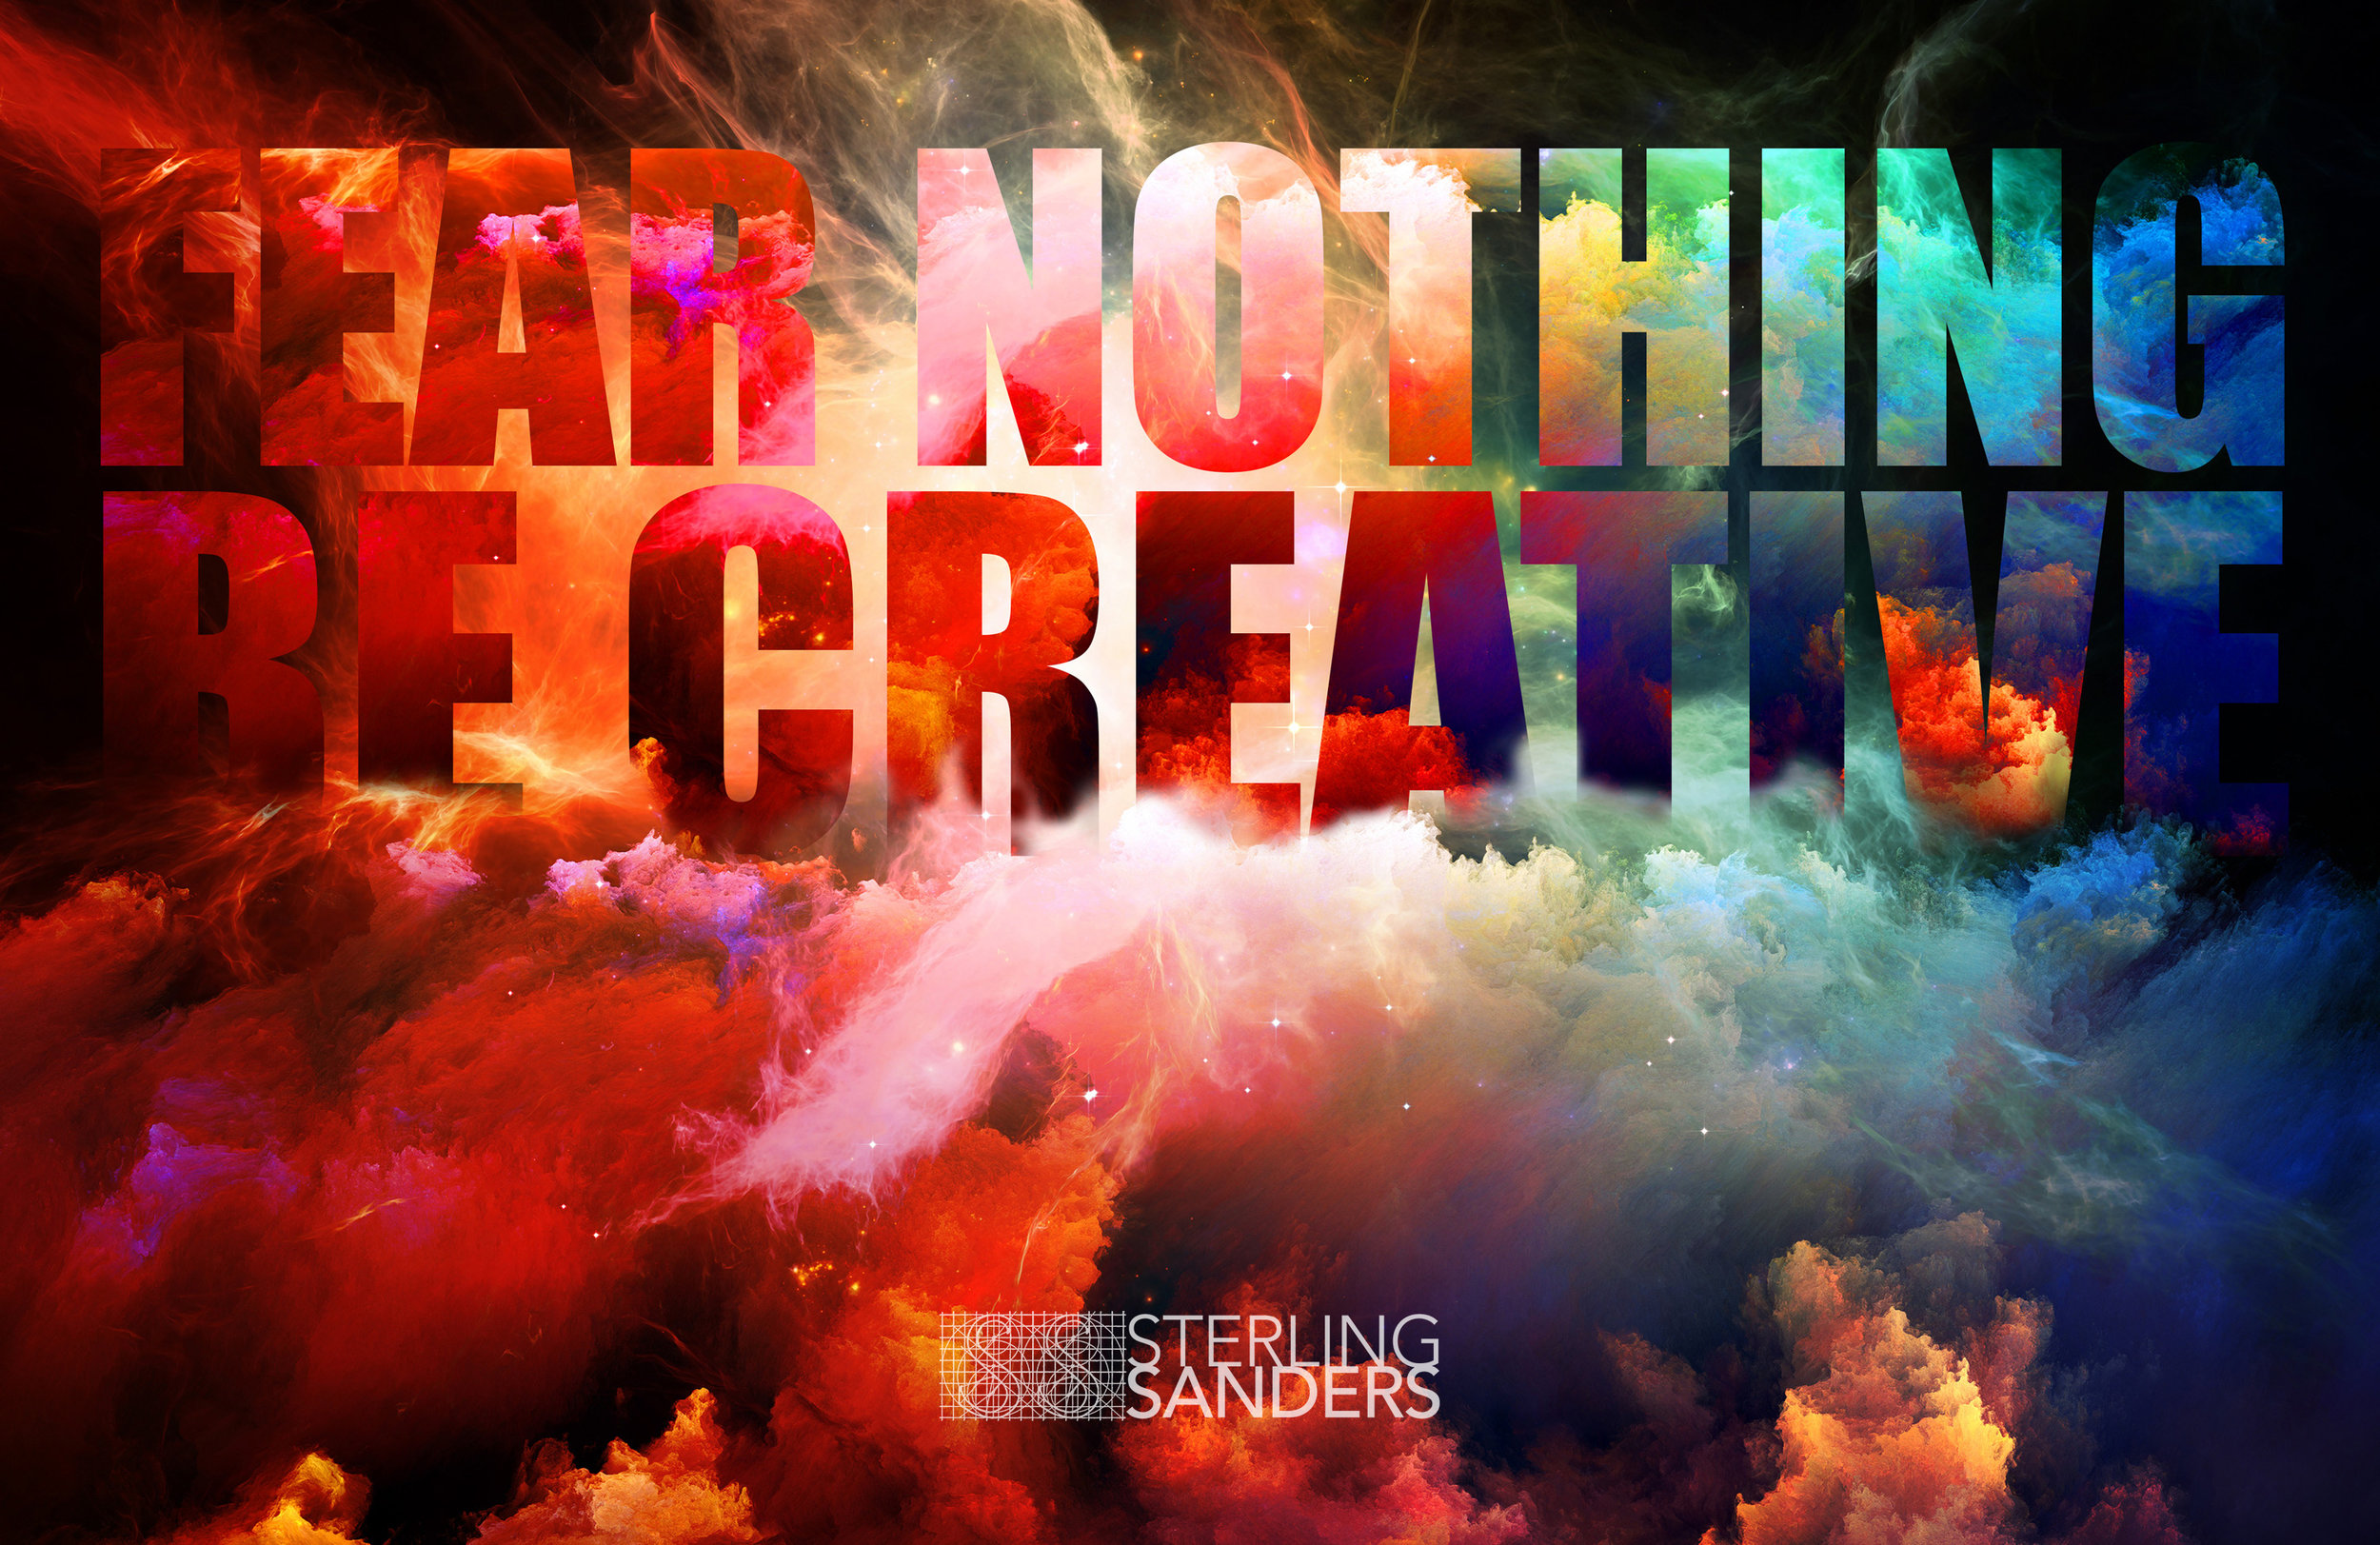 sterling sanders - fear_nothing_be_creative_laptop_(hr-portfolio).jpg